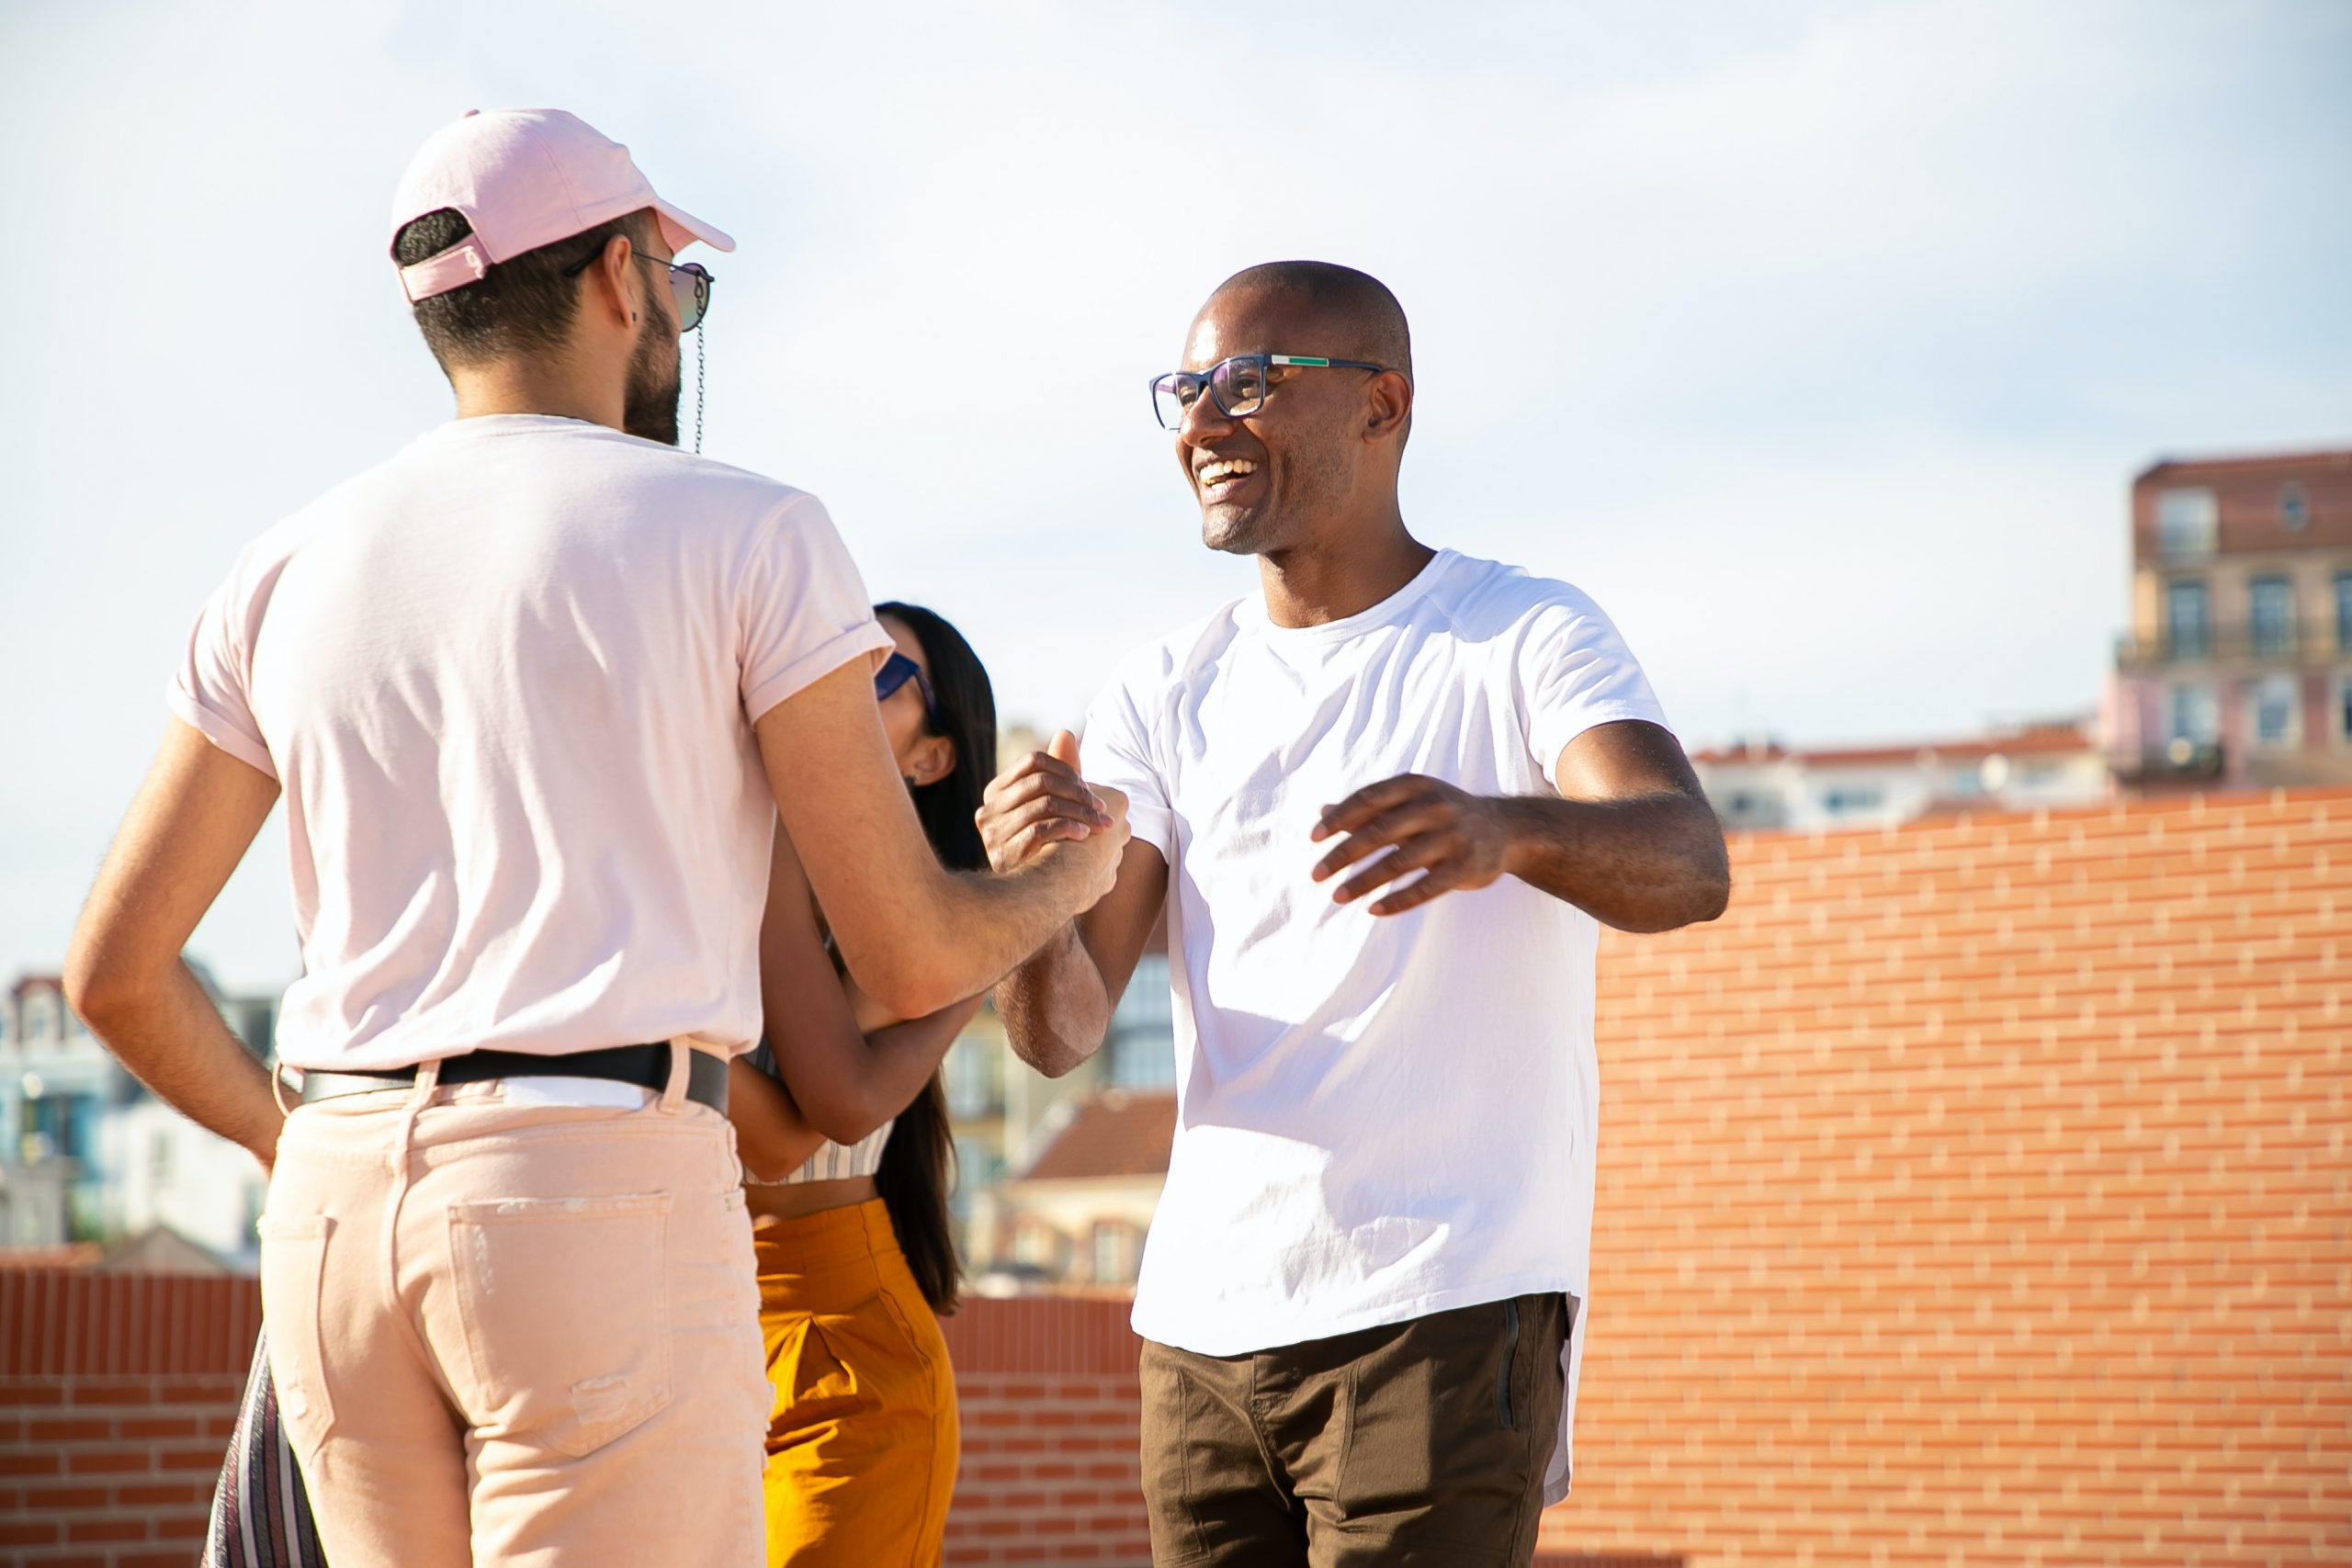 """Image of two people sharing a handshake on a rooftop. This image illustrates how someone searching """"psychosis symptoms"""" could look after psychosis treatment in New York City. 10010   10011"""